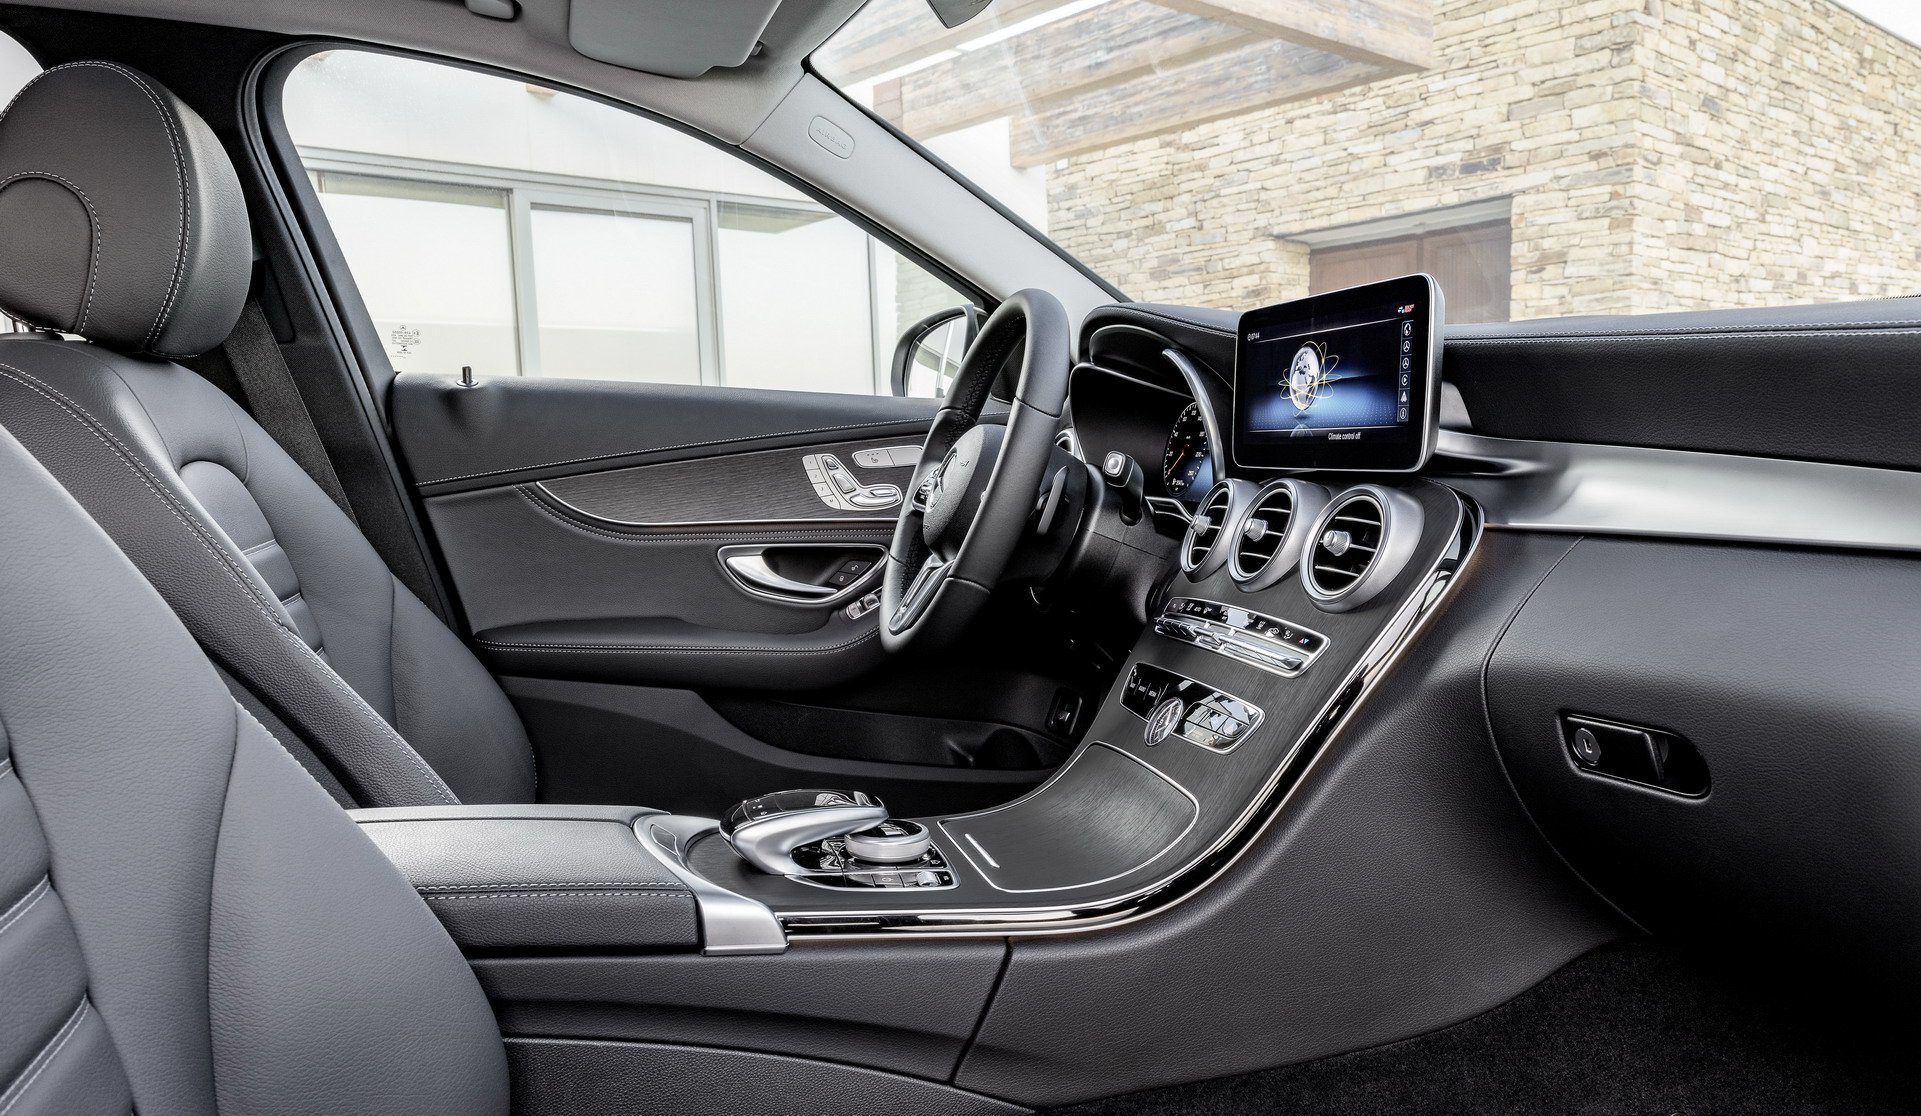 Mercedes-Benz-them-C-Class-2018-ban-may-dau-gia-re-anh-7